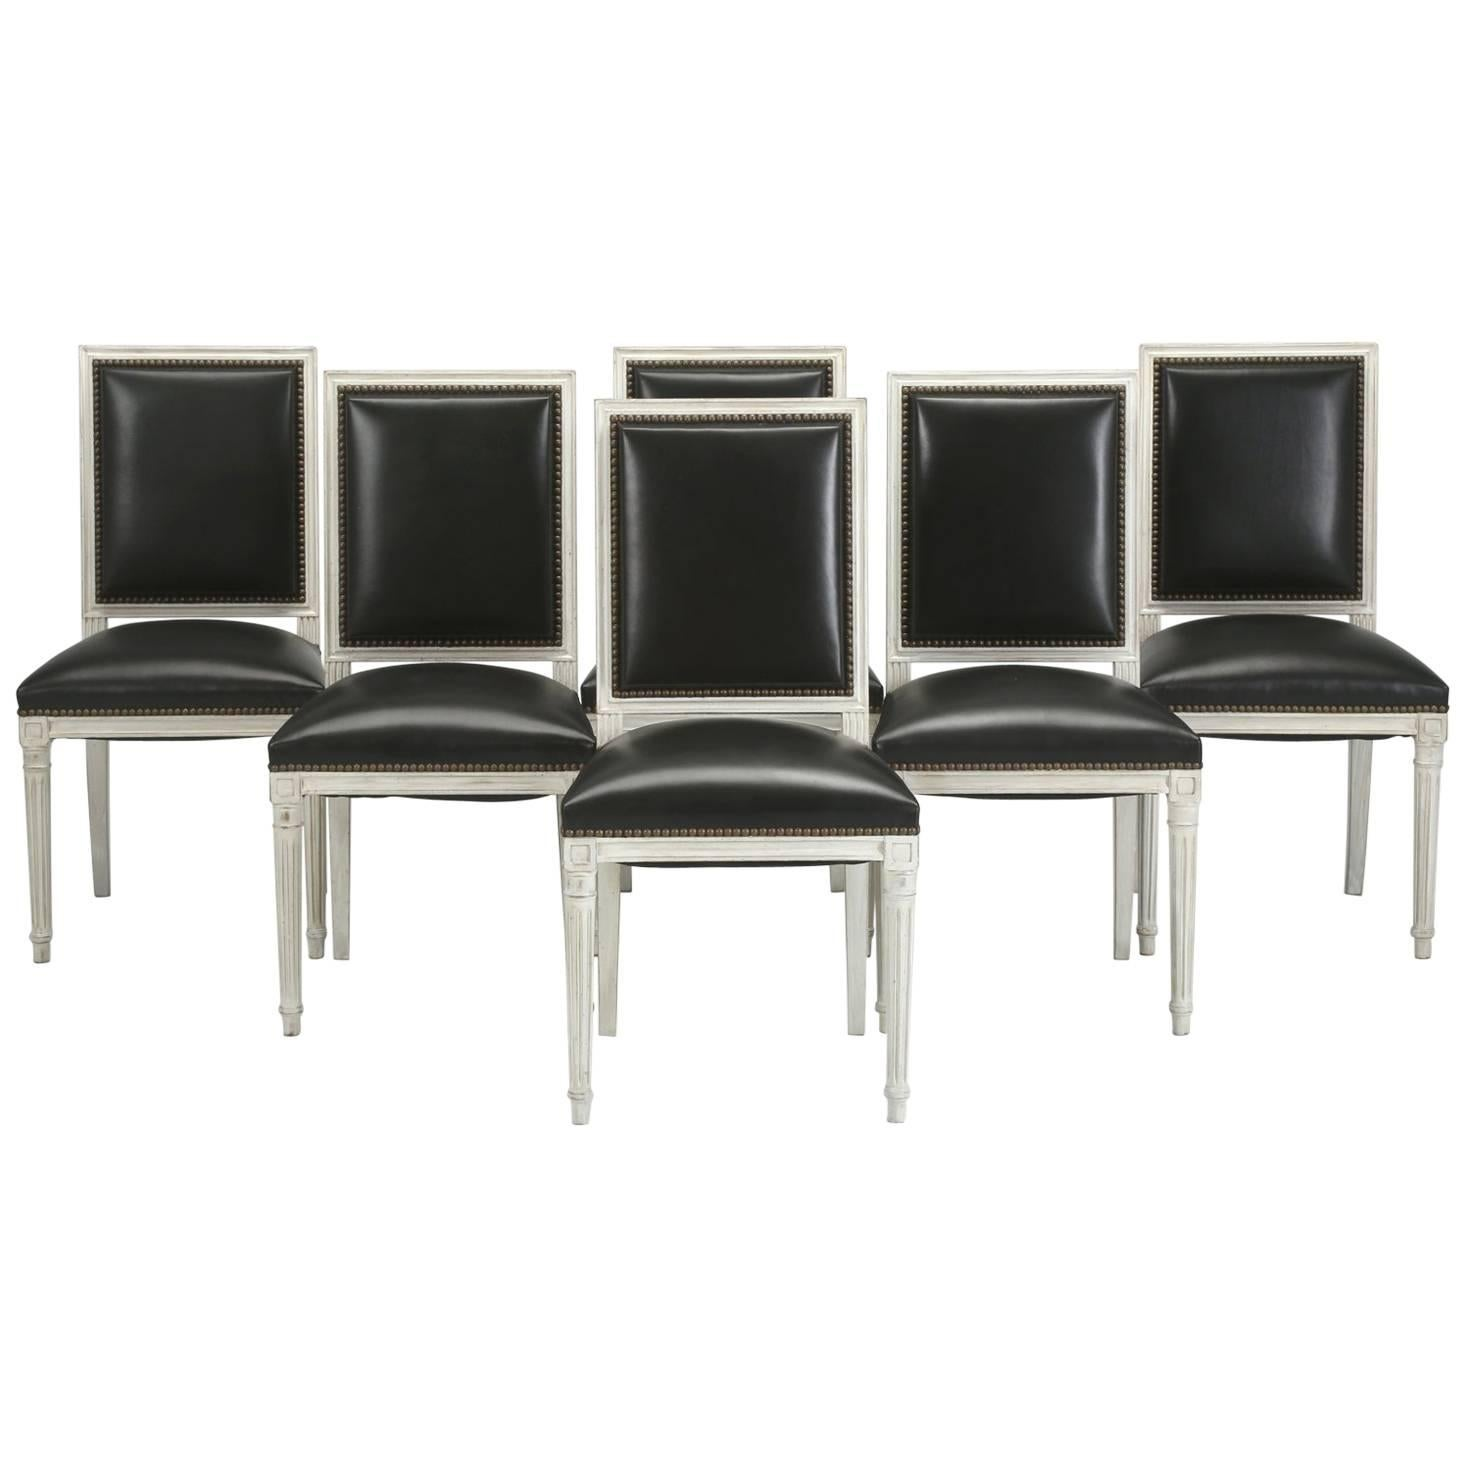 French Louis XVI Style Dining Chairs In Black Leather And Distressed White  Paint For Sale